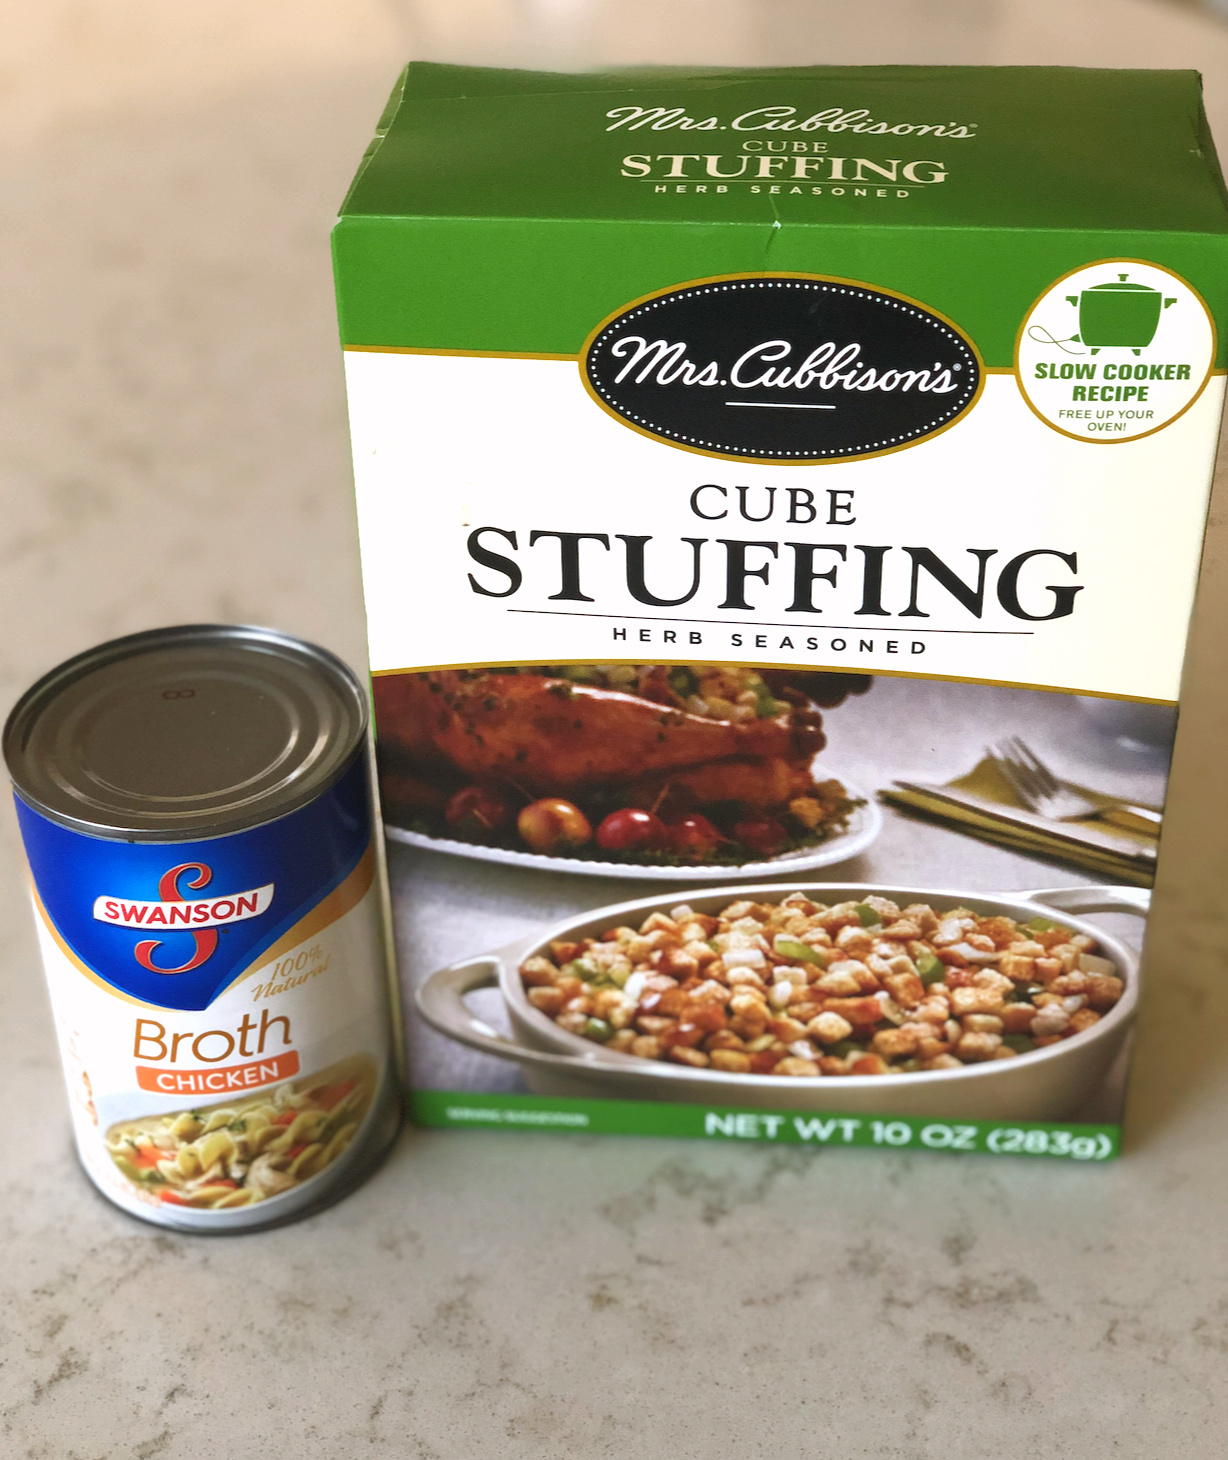 can of chicken broth and box of stuffing cubes